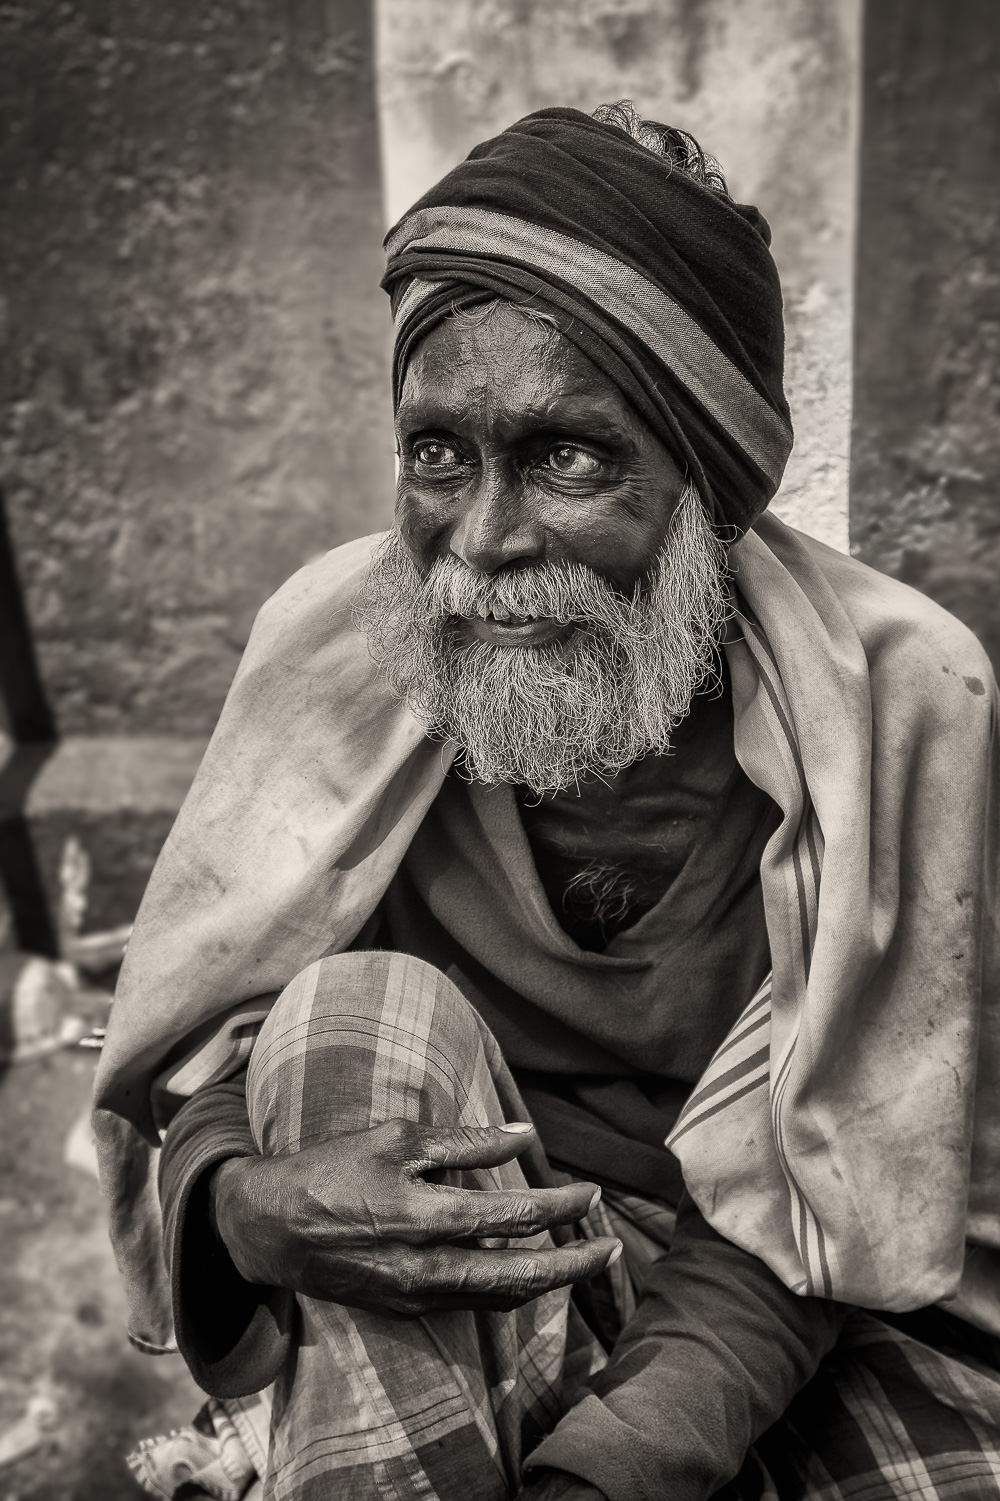 A cheeky, impish expression on the face of a  professional beggar  in  Chennai  in Tamil Nadu,  India .